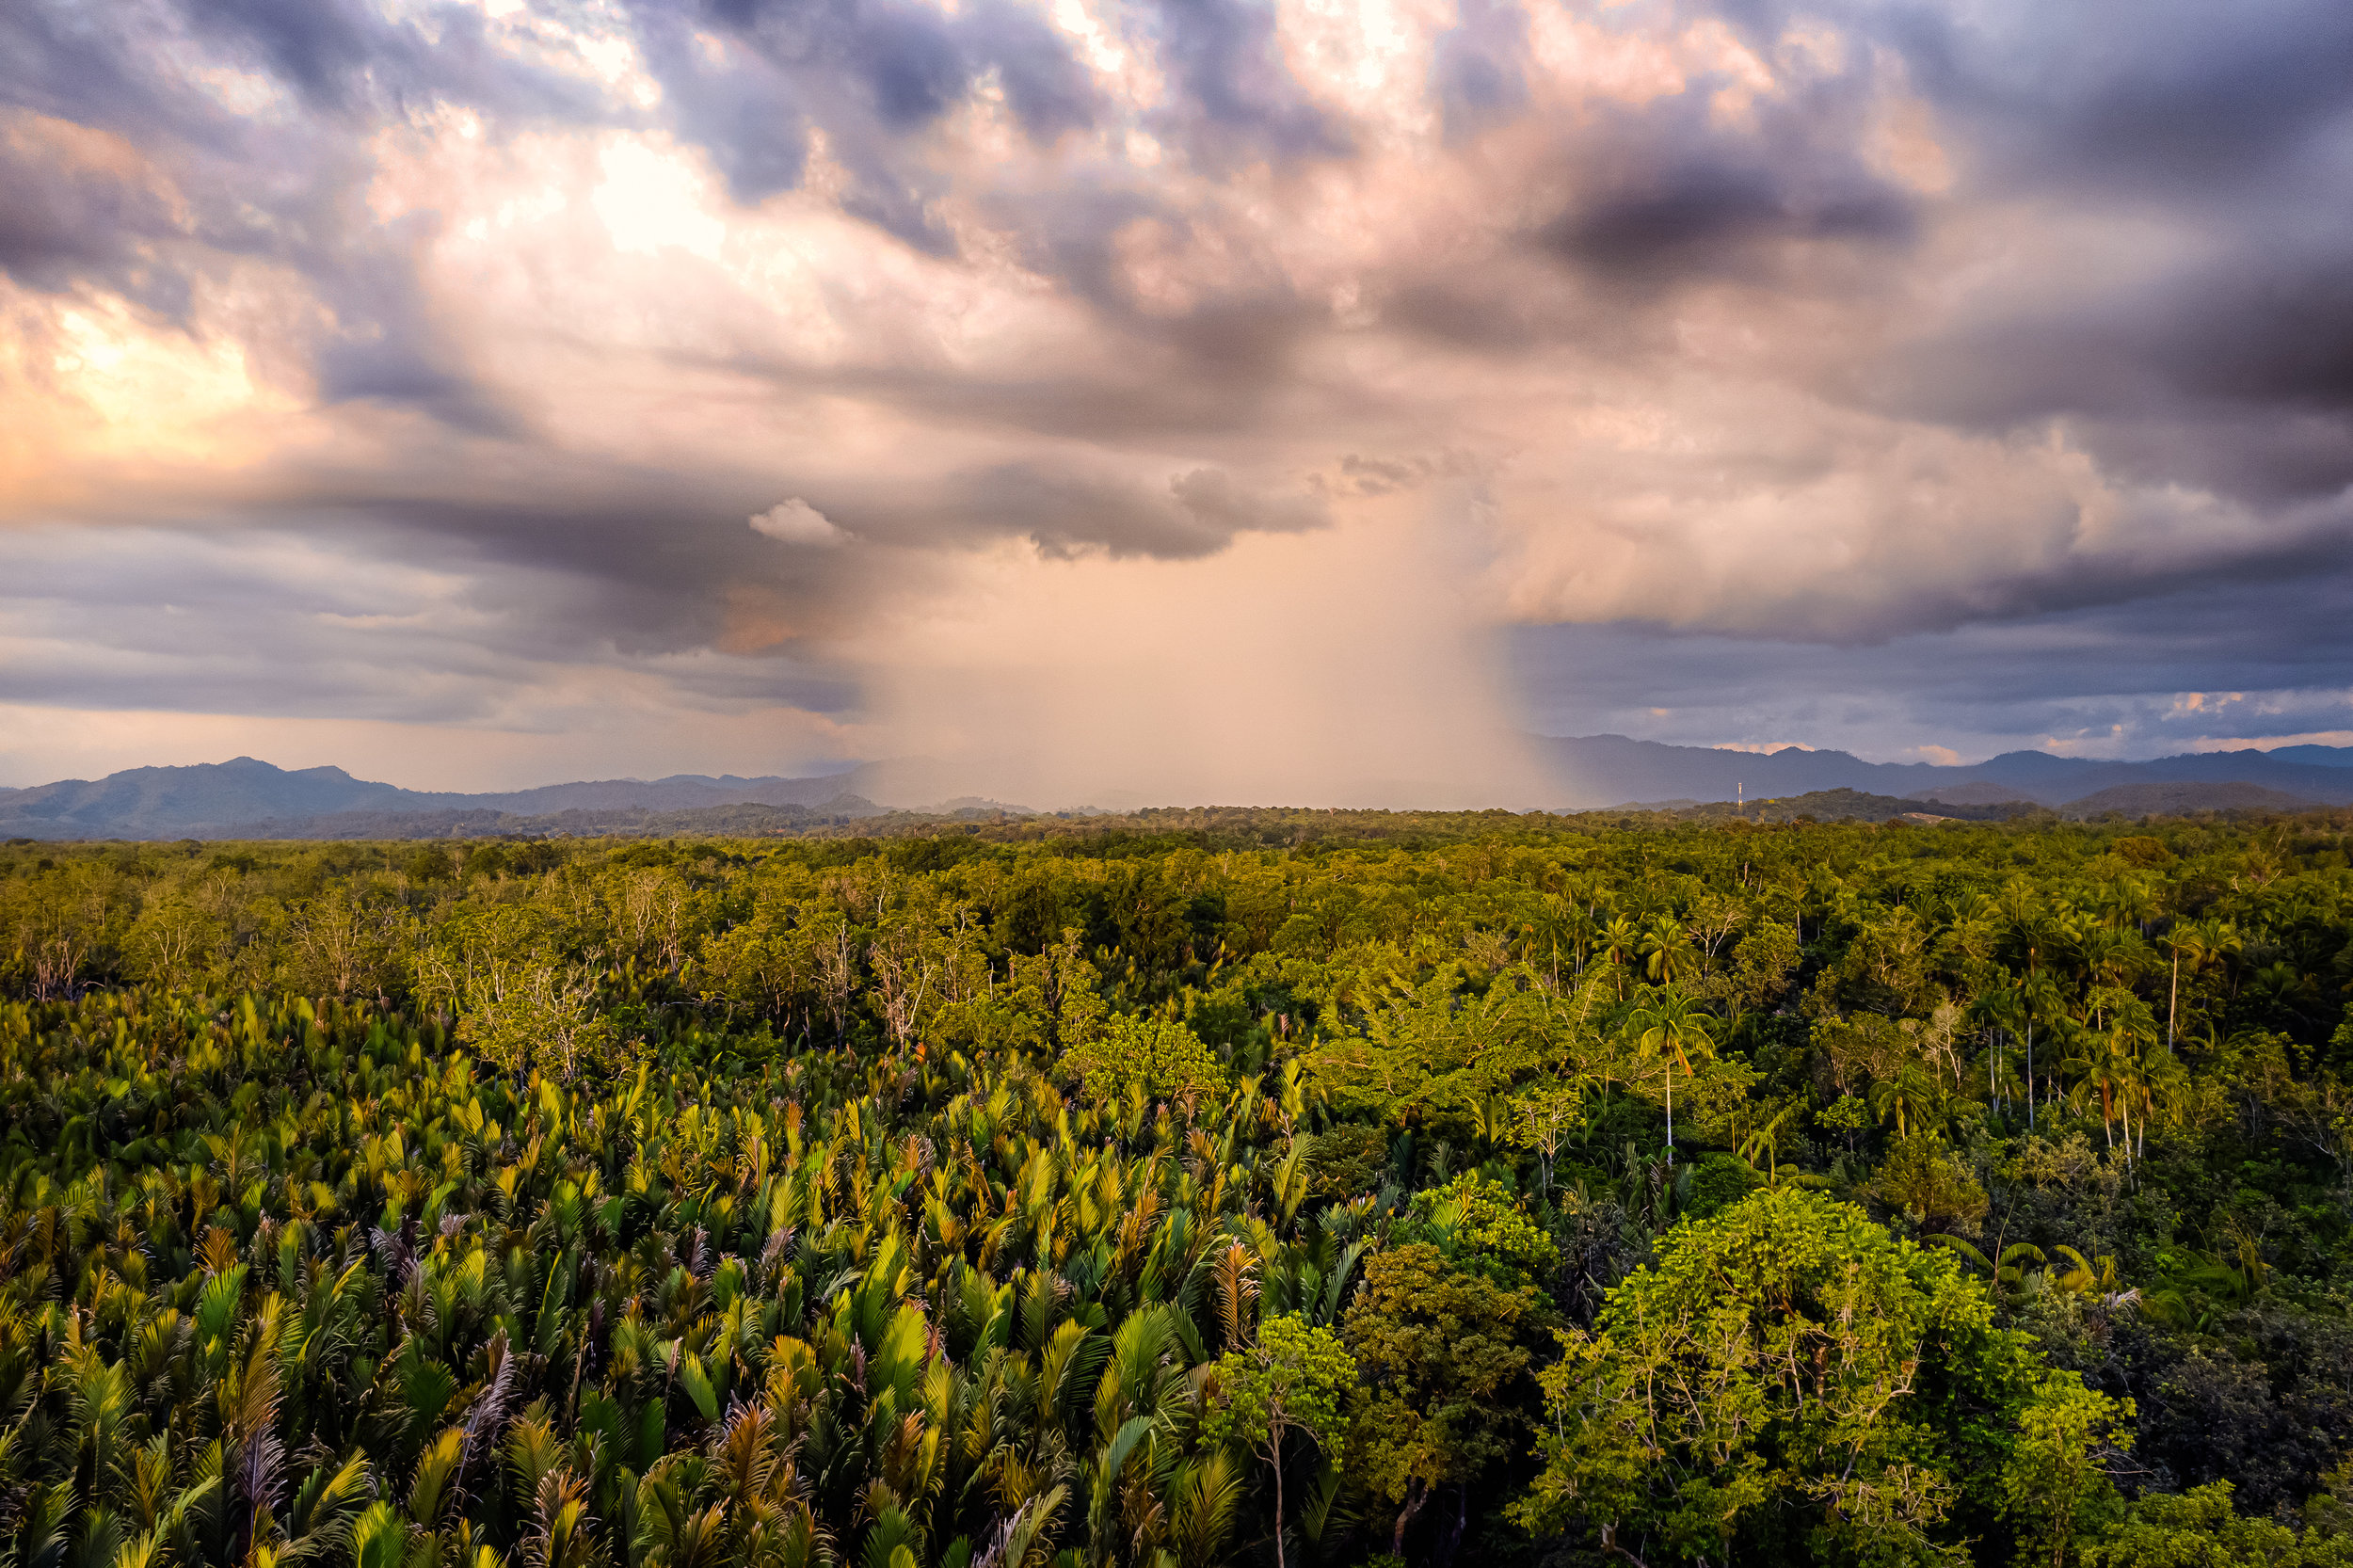 Rain clouds touch down over the rainforest in Sabah, Shot on DJI Mavic 2 Pro, by Joshua Karthik.